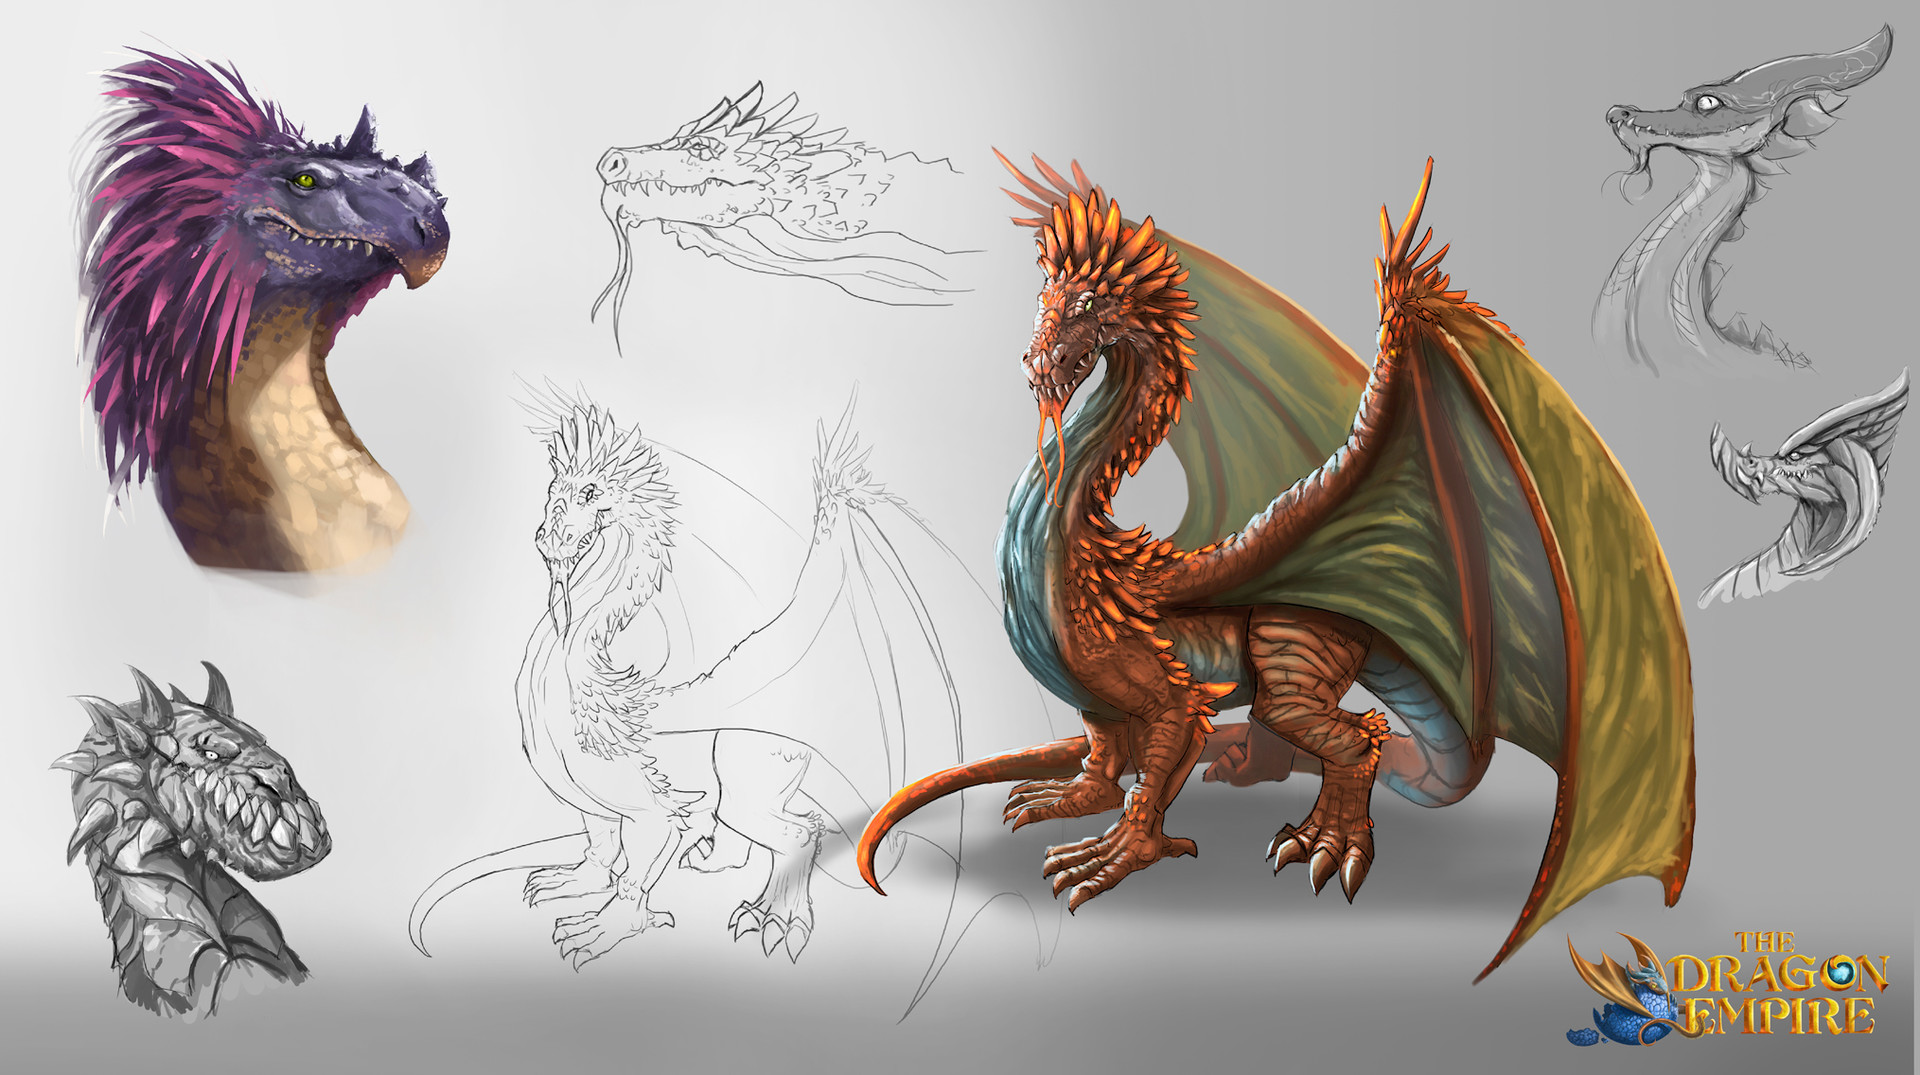 danny kundzinsh conceptual design and illustration dragon